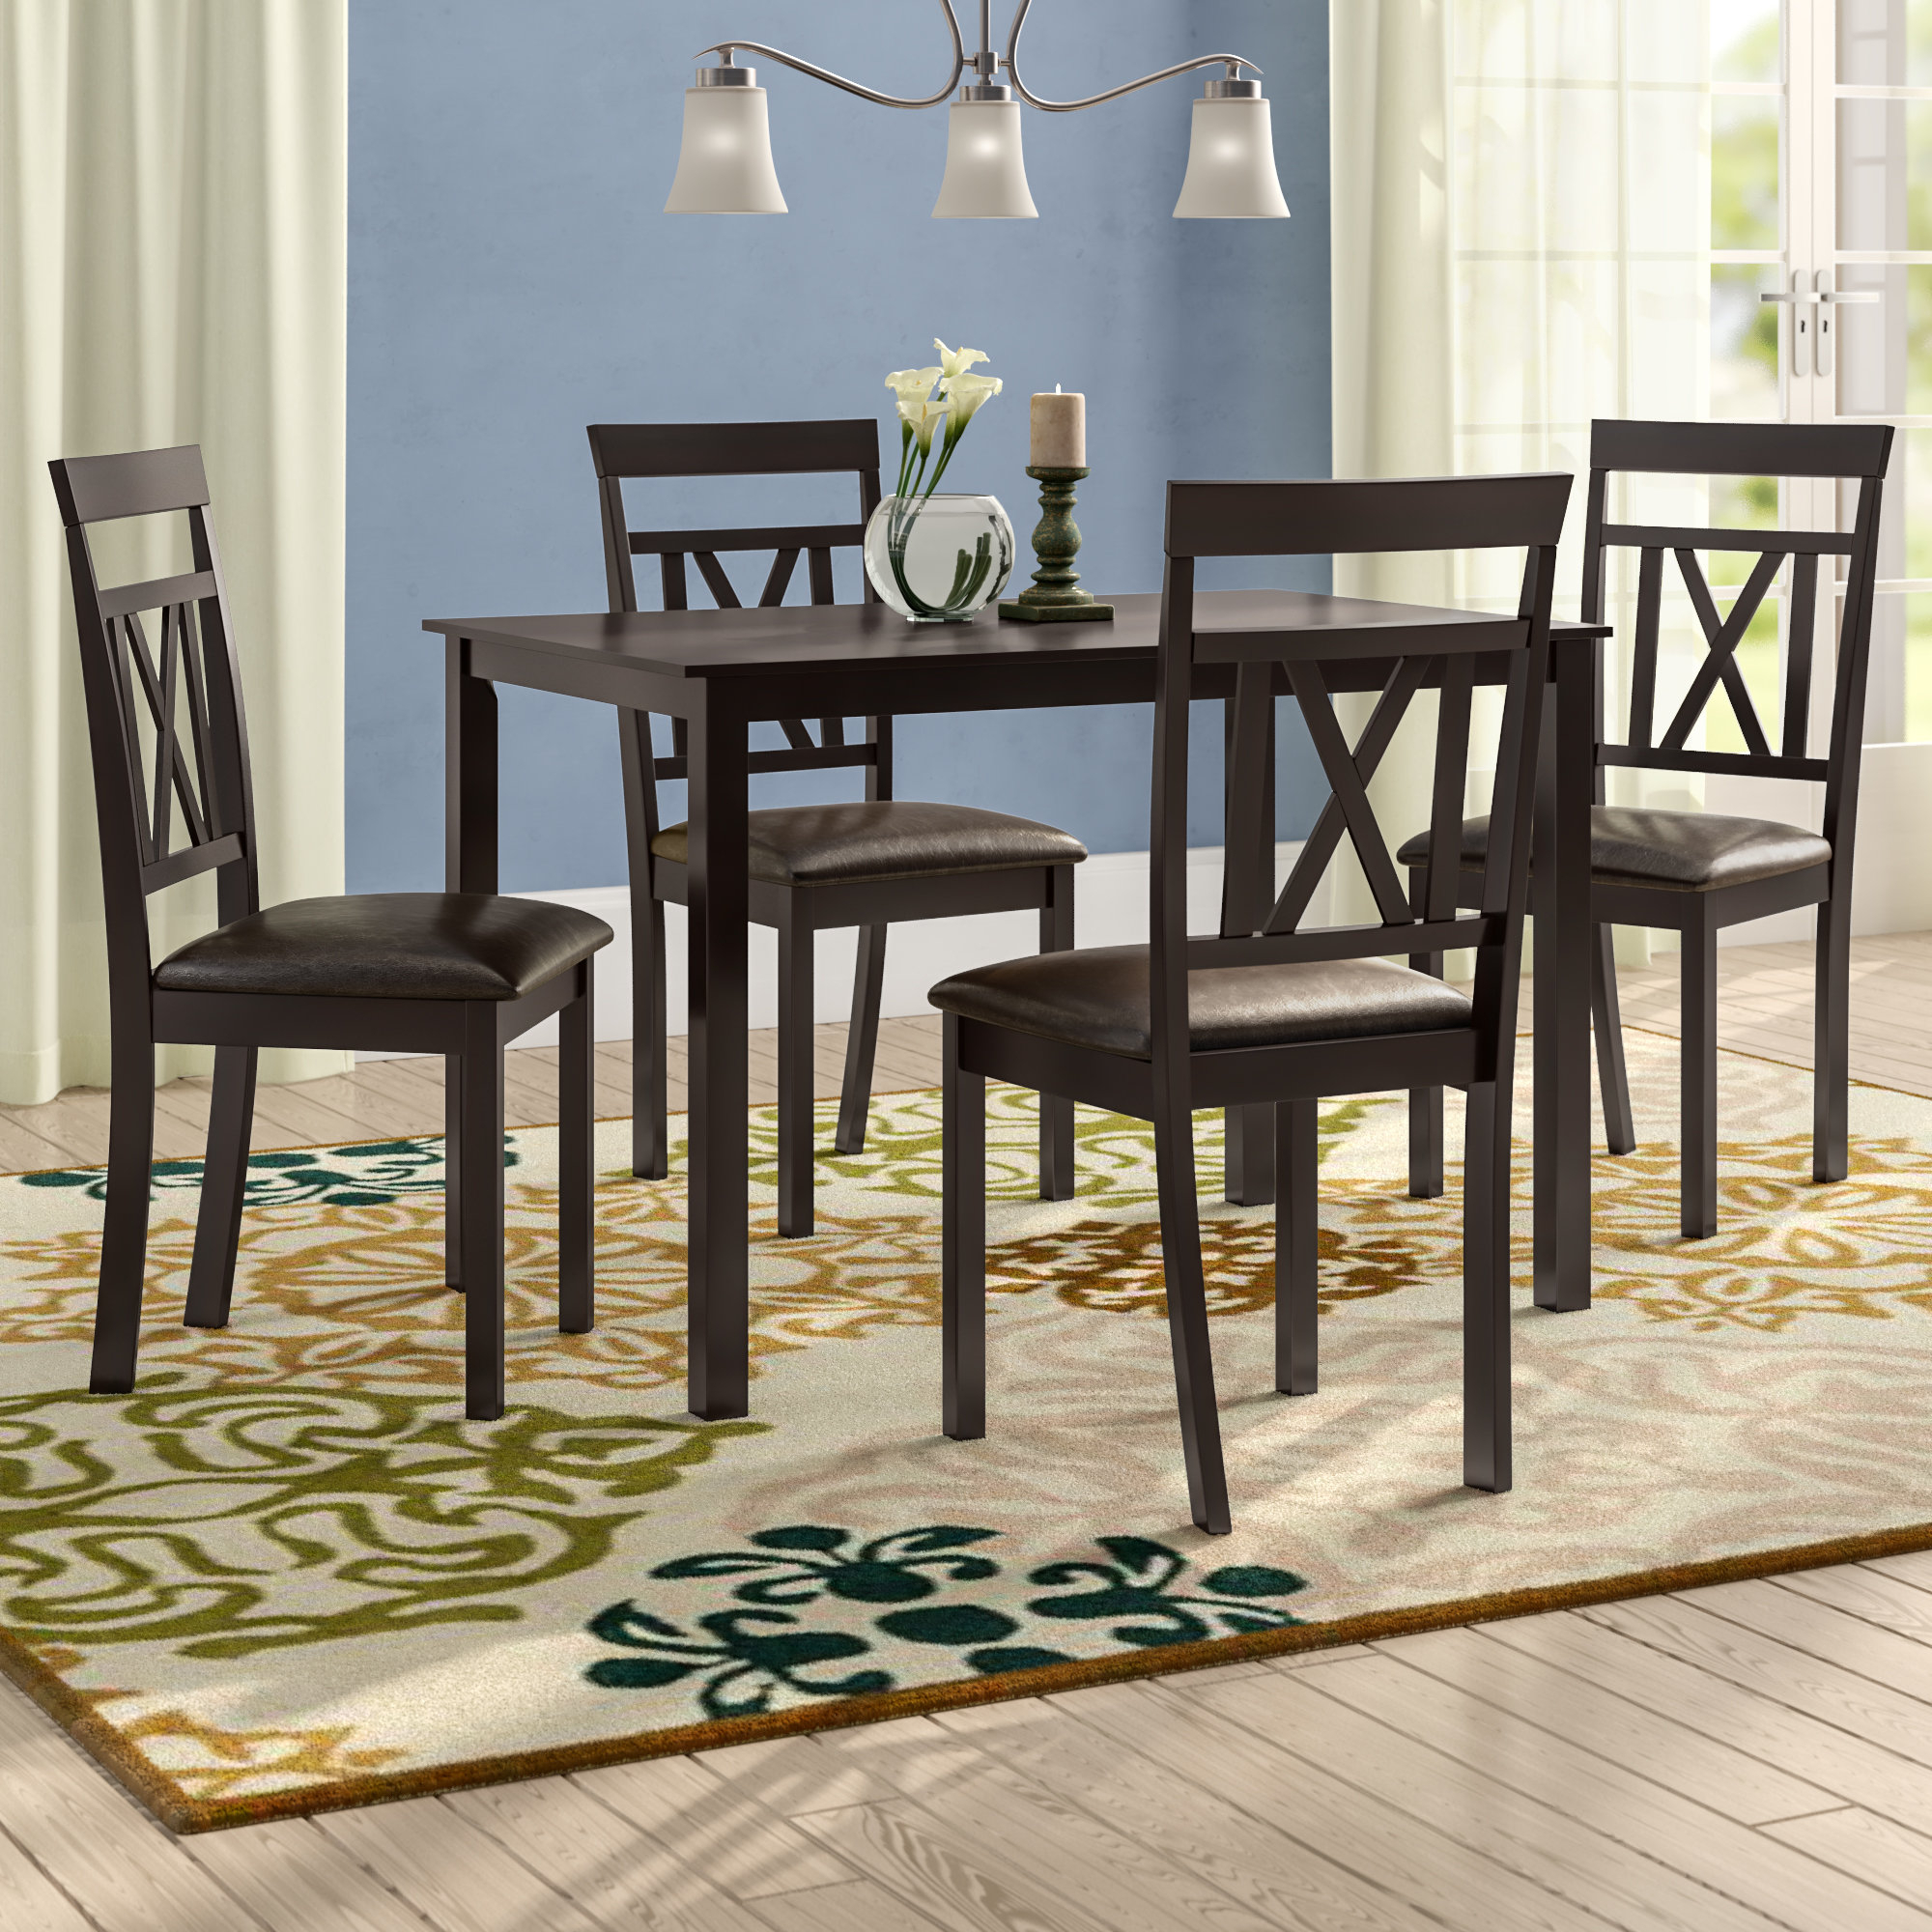 Newest 5 Piece Breakfast Nook Dining Sets Within Whitbey Modern And Contemporary 5 Piece Breakfast Nook Dining Set (View 13 of 20)